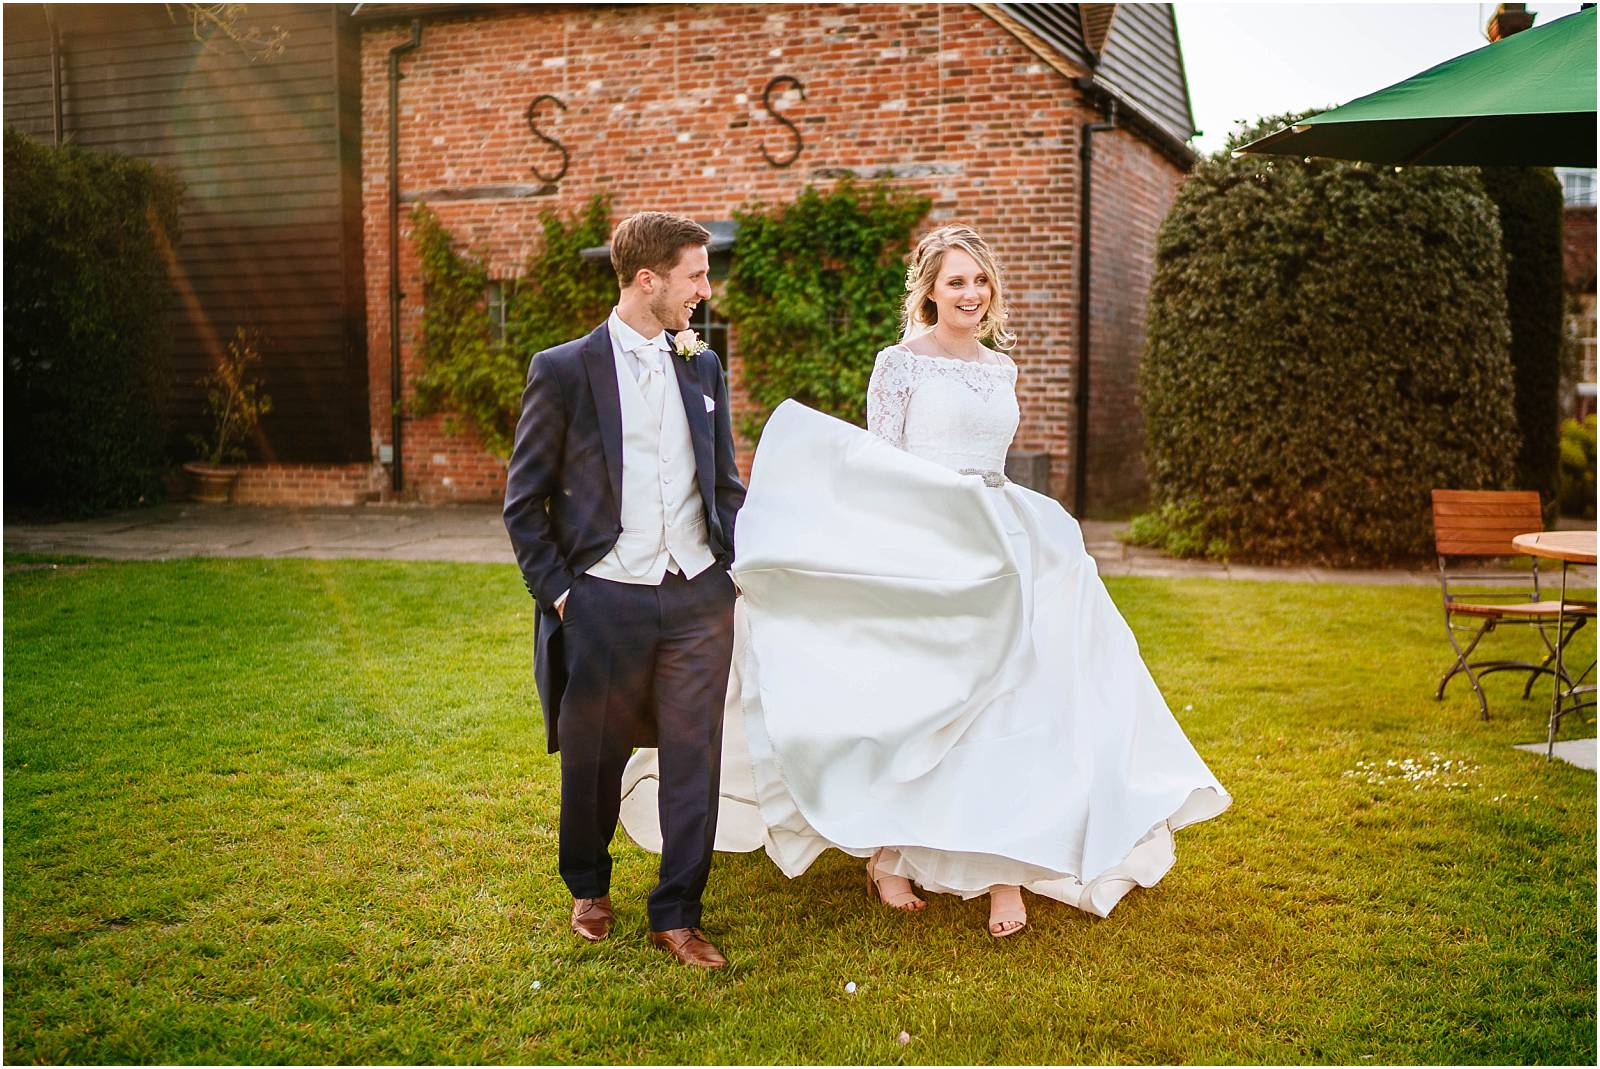 MicklefieldHall wedding photography